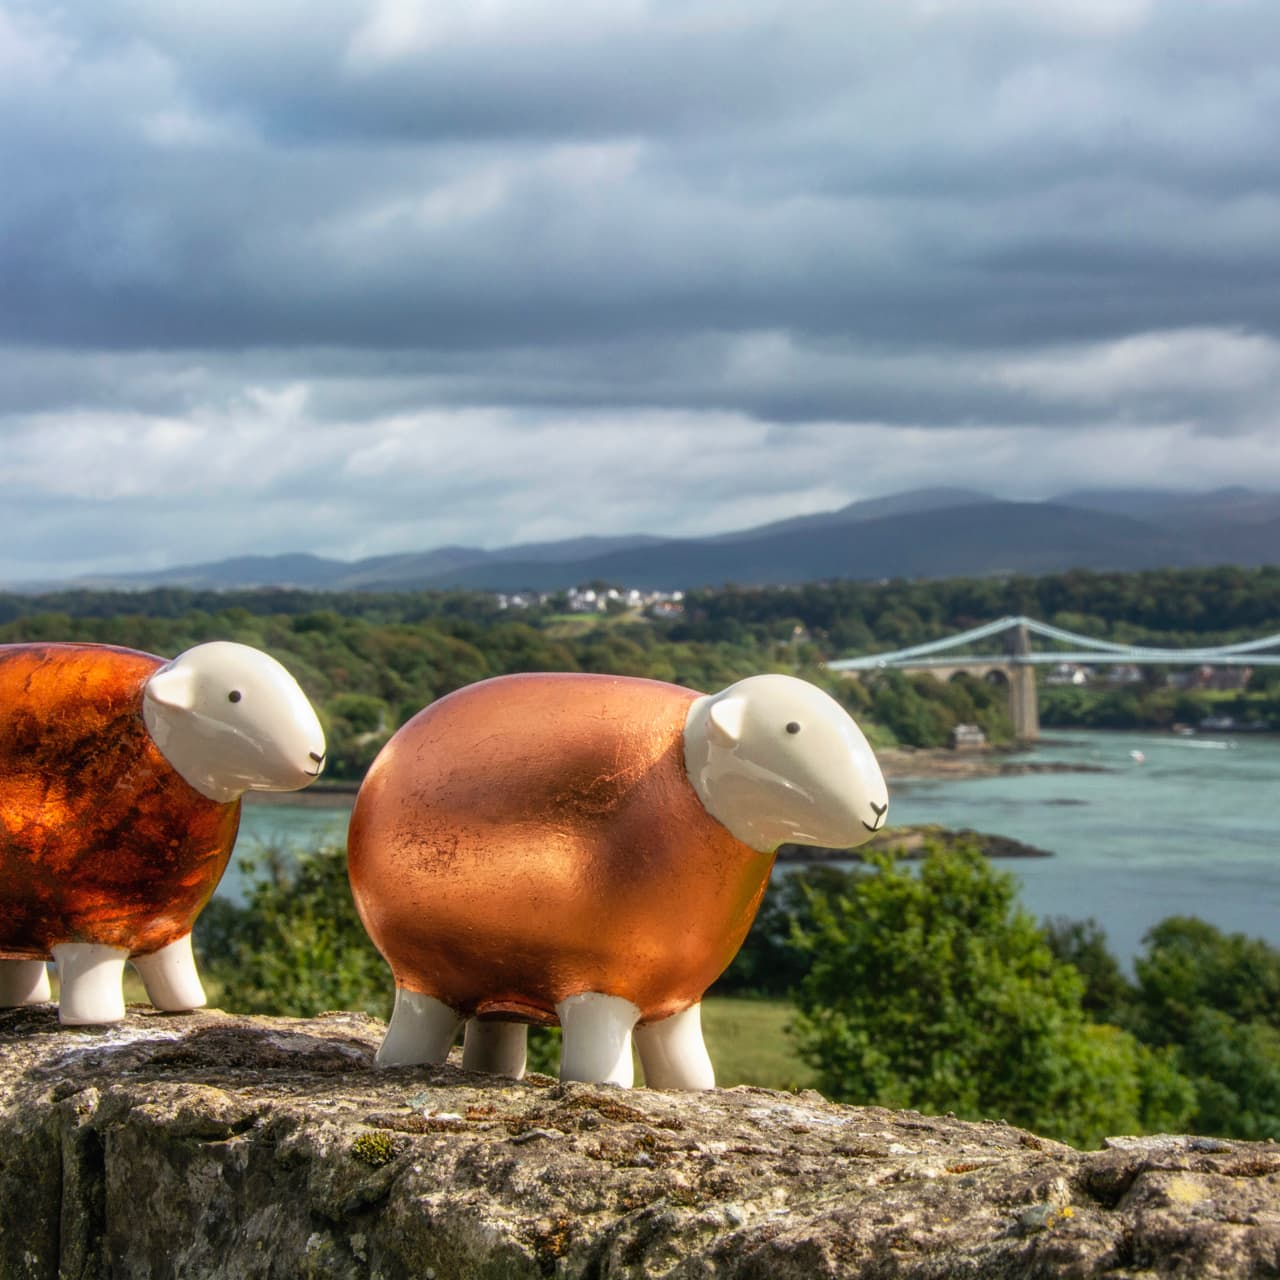 The two Copper Herdys perch above the Menai Strait with the Menai Bridge and the Snowdonia mountains in the distance.